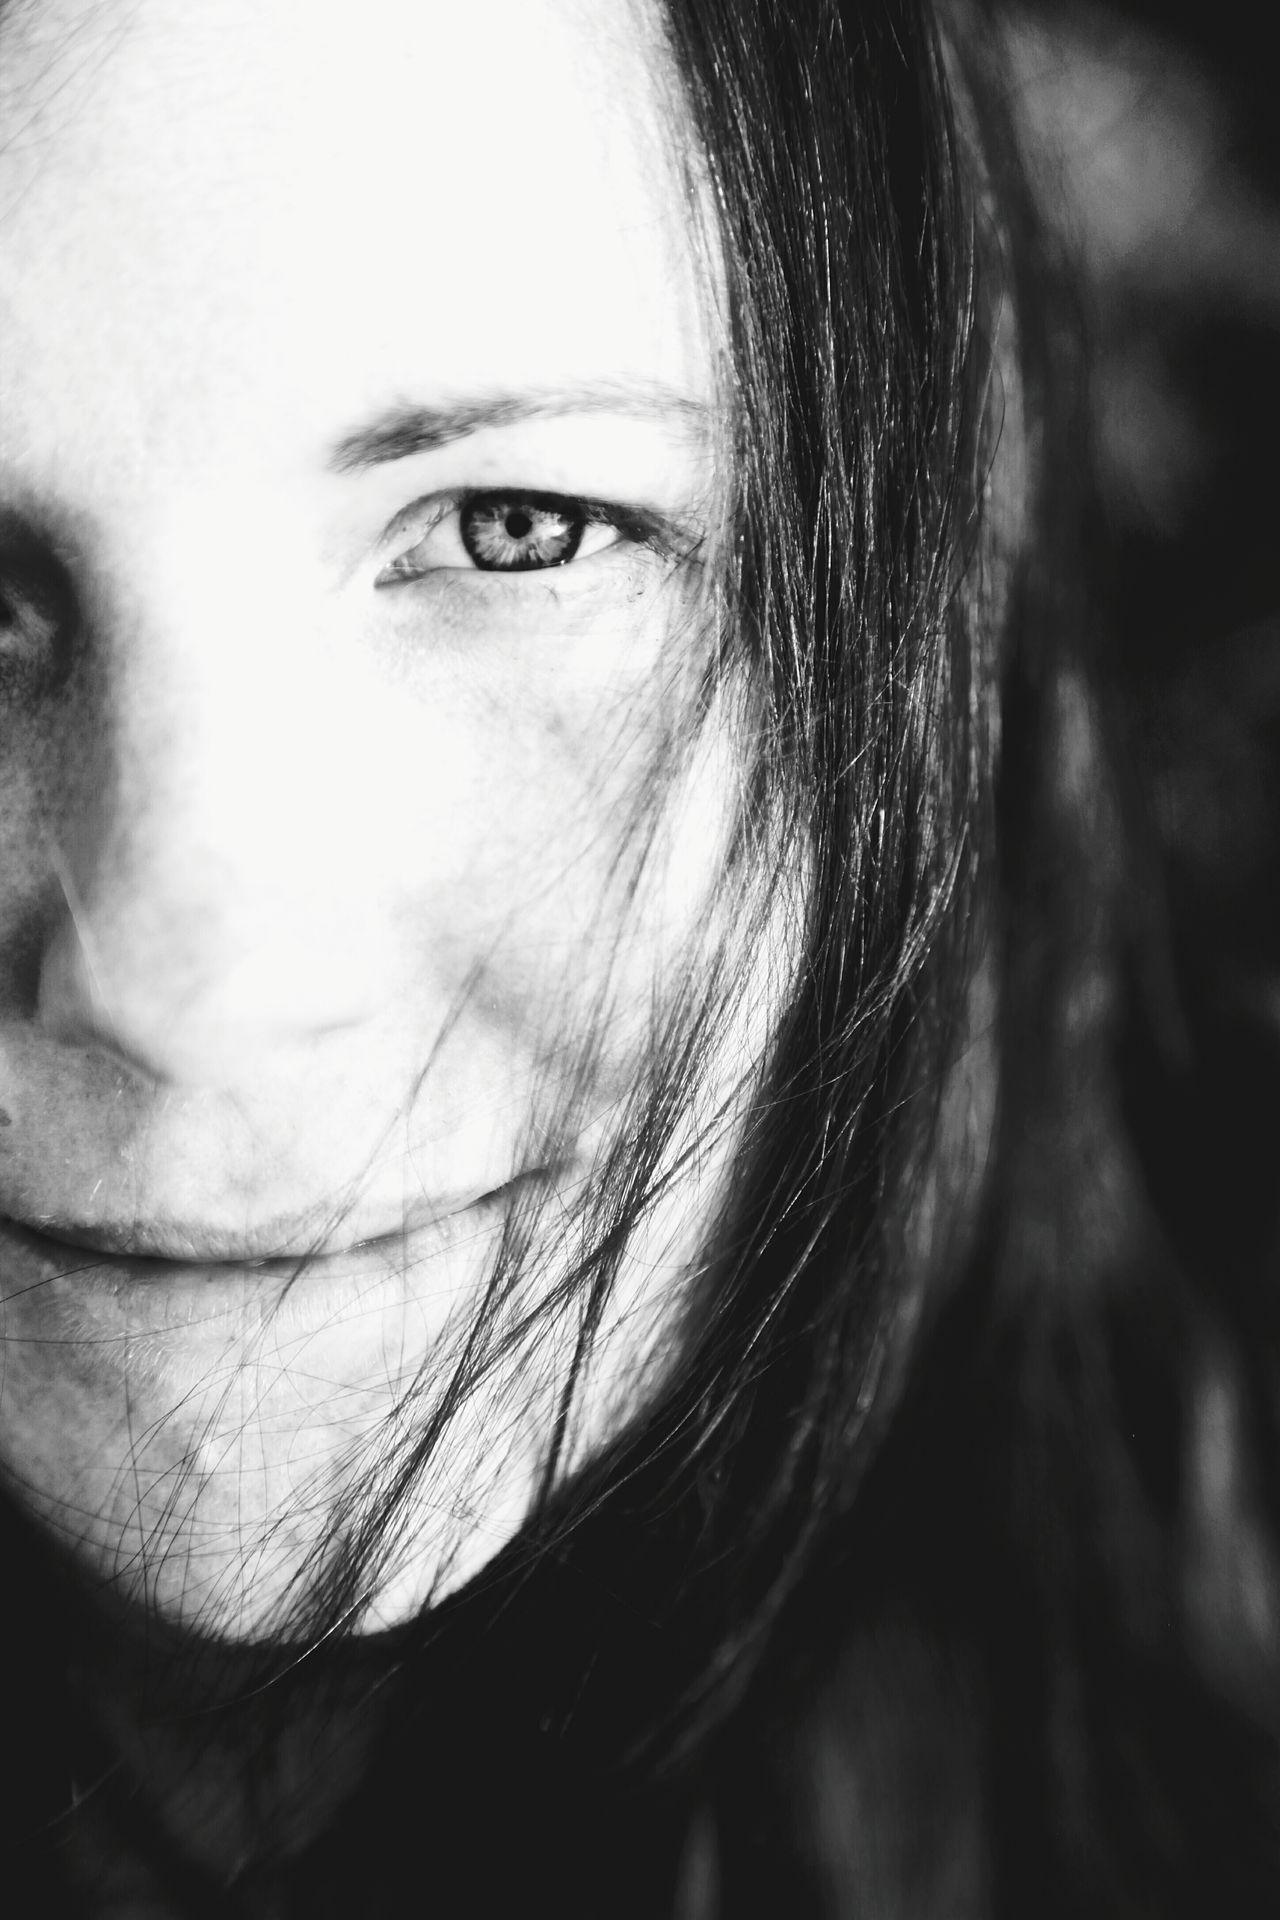 Portrait Portrait Of A Woman Close-up Eye Eyes Face Human Eye Human Face Human Body Part One Woman Only Real People People Looking At Camera Blackandwhite Black And White Black & White The Portraitist - 2017 EyeEm Awards